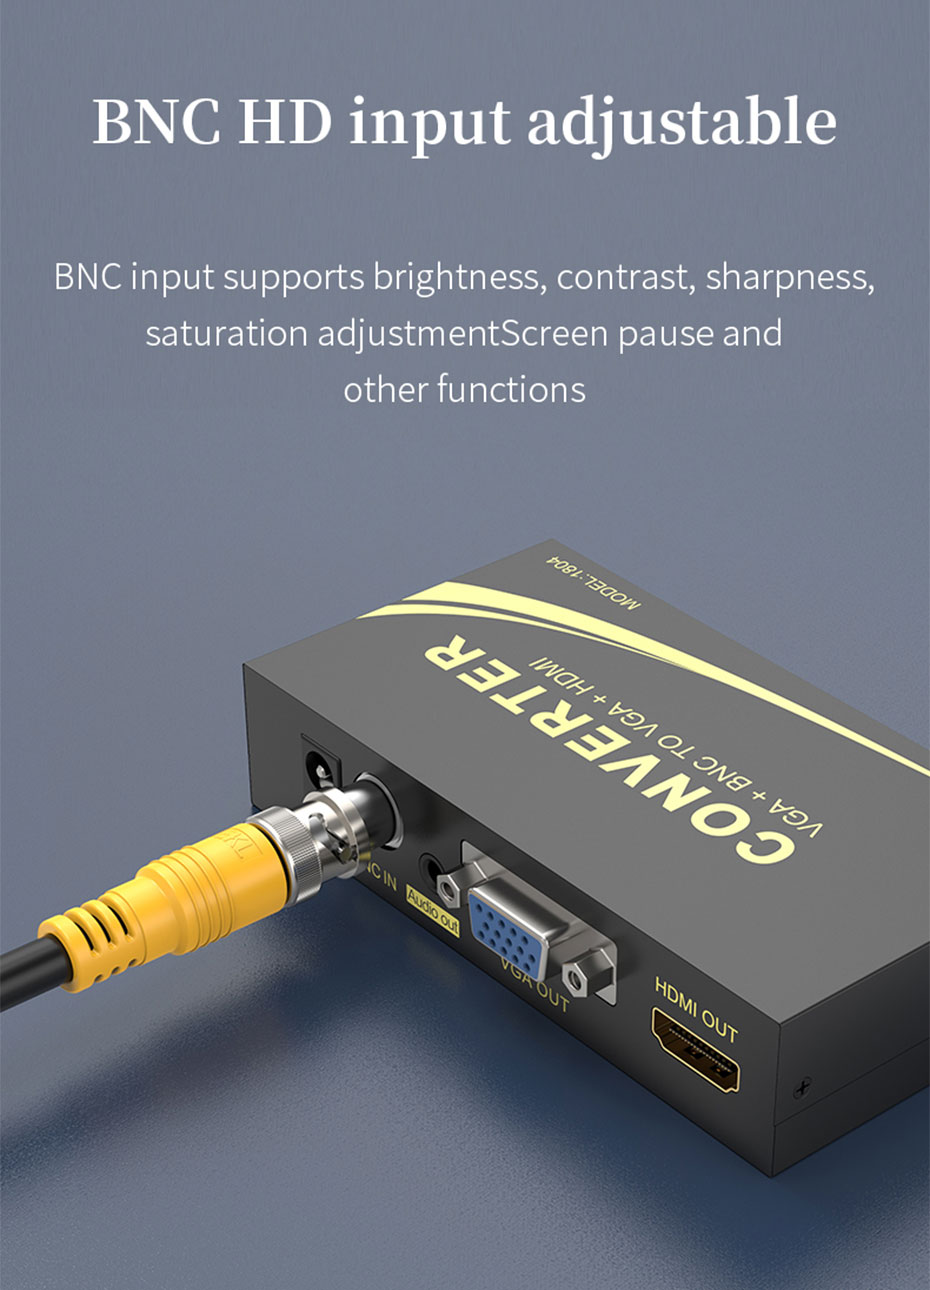 BNC to HDMI converter 1804 BNC input supports brightness, contrast, sharpness, saturation adjustment and other functions